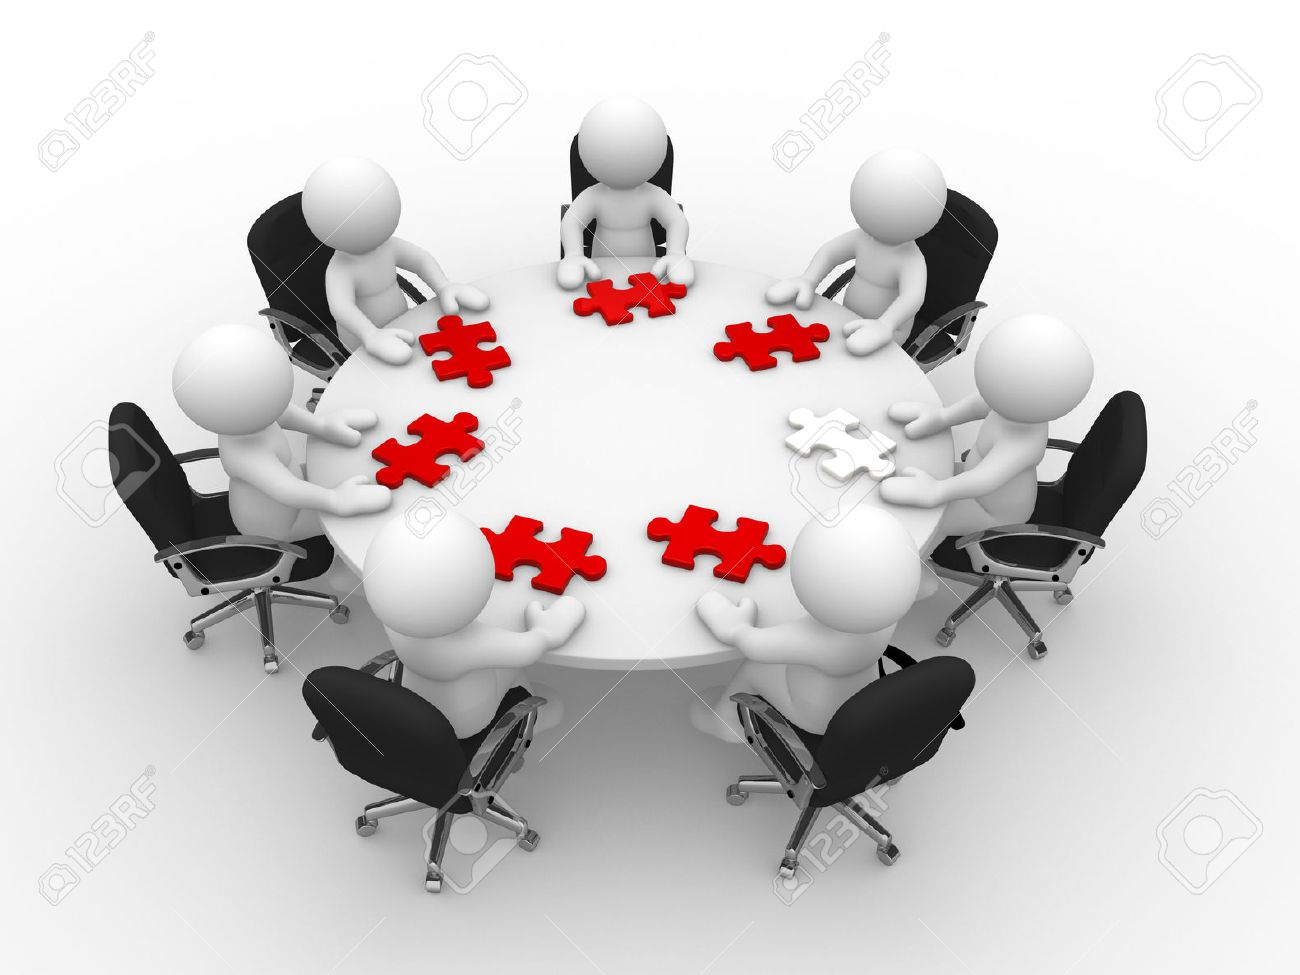 3d people - man, person at a round table and puzzle pieces ( jigsaw) Standard-Bild - 25450985